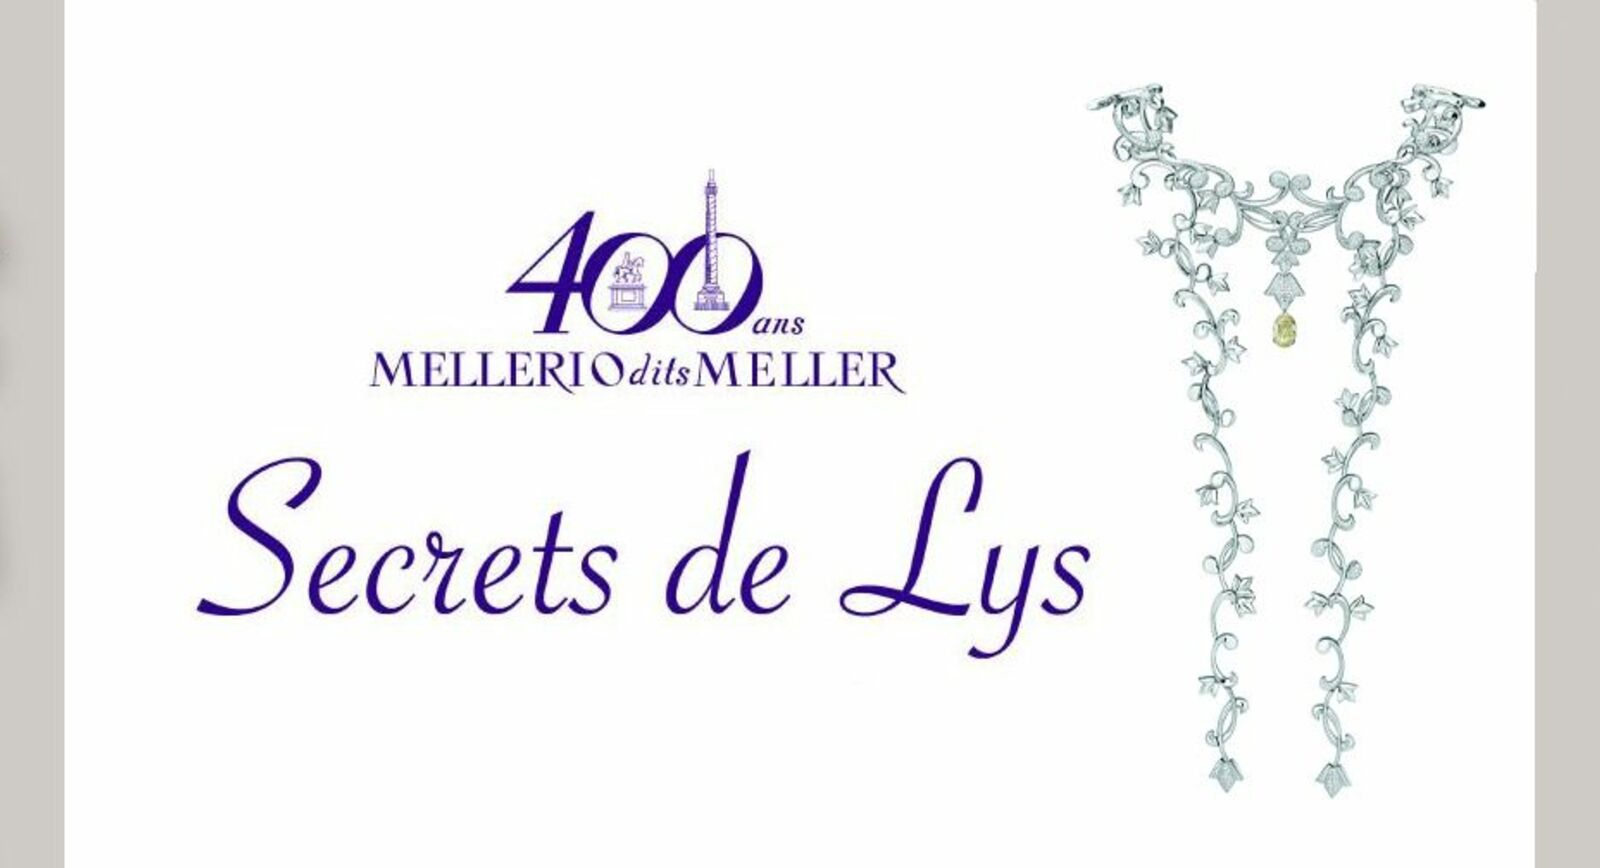 The new Secrets de Lys collection by Mellerio dits Meller